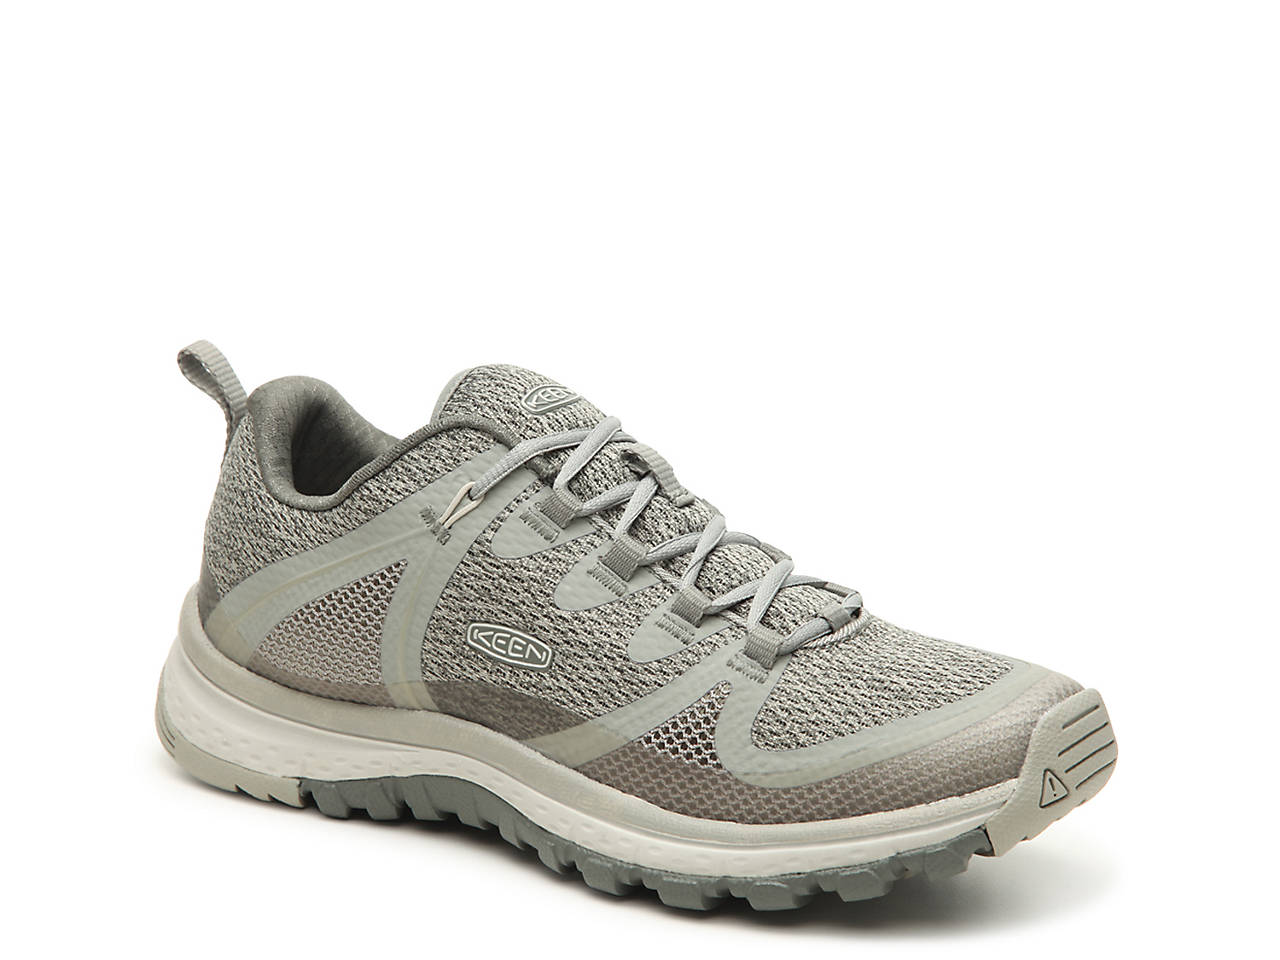 67e2796a6722 Keen Terradora Trail Shoe Women s Shoes